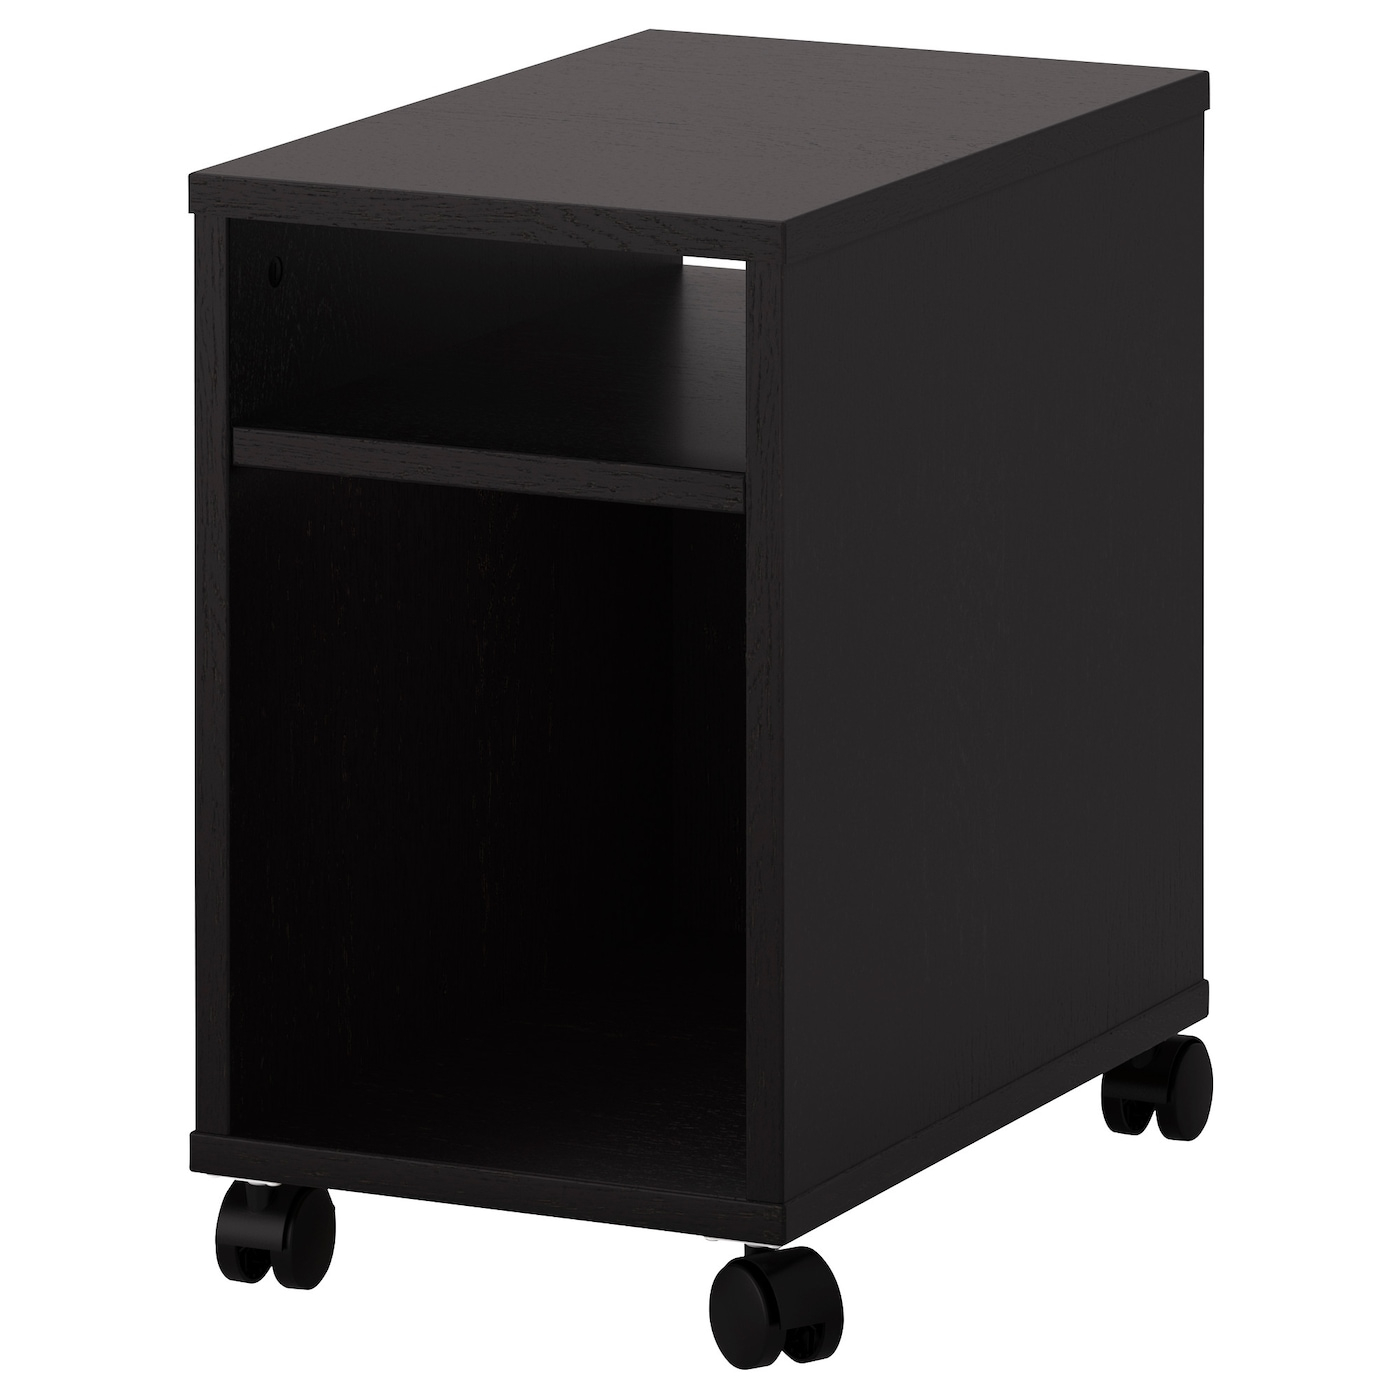 oltedal bedside table black brown 32x50 cm ikea. Black Bedroom Furniture Sets. Home Design Ideas